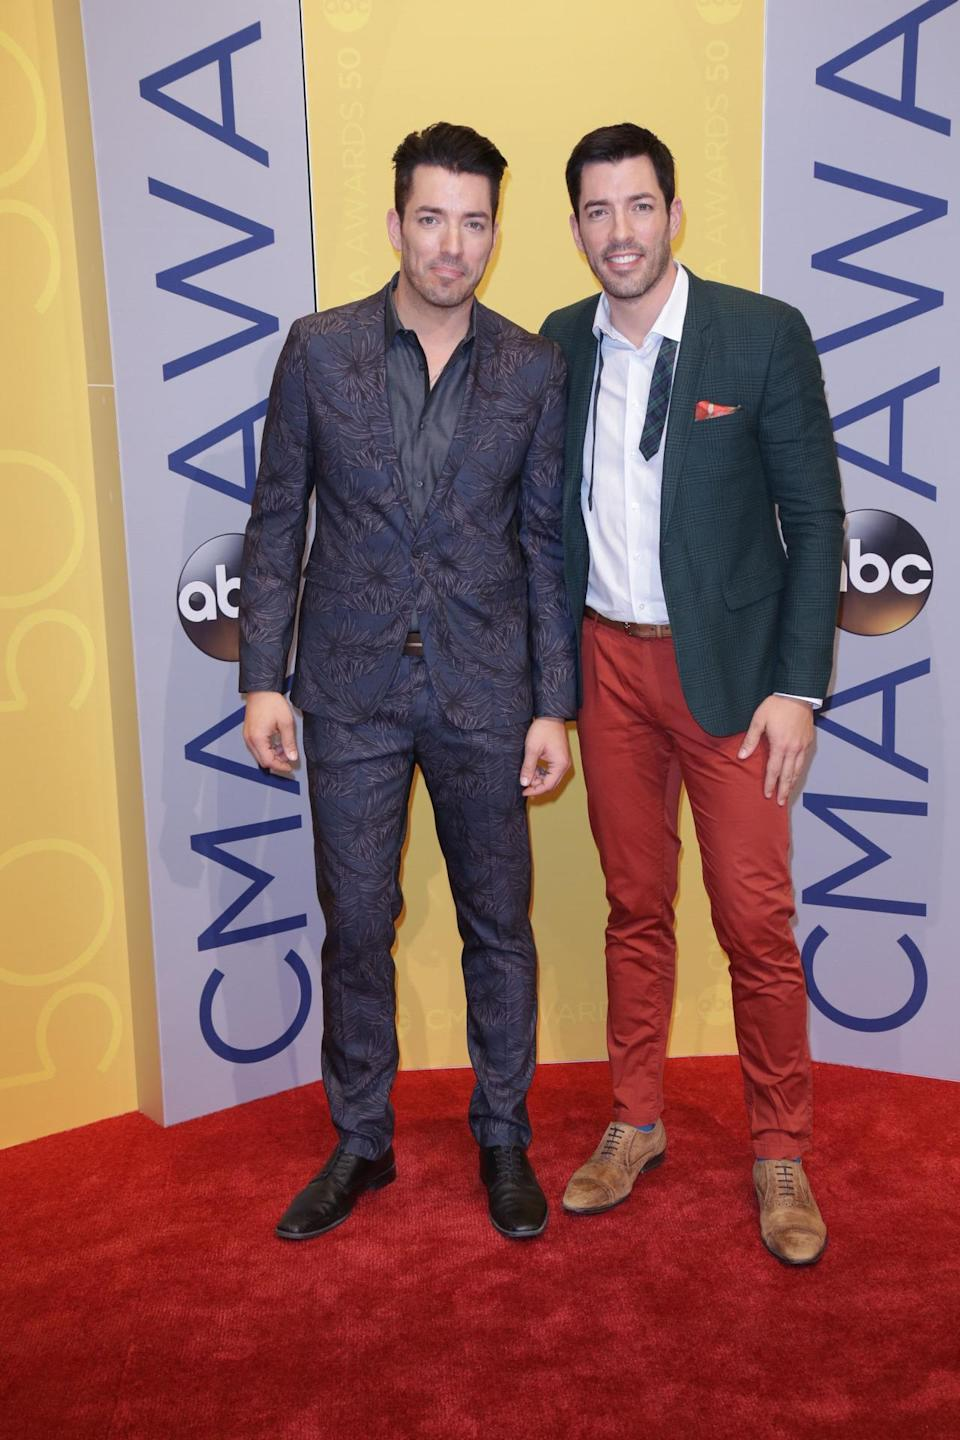 The <em>Property Brothers</em> Jonathan Scott and Drew Scott stay connected. (Photo: Quasar/STAR MAX/IPx)